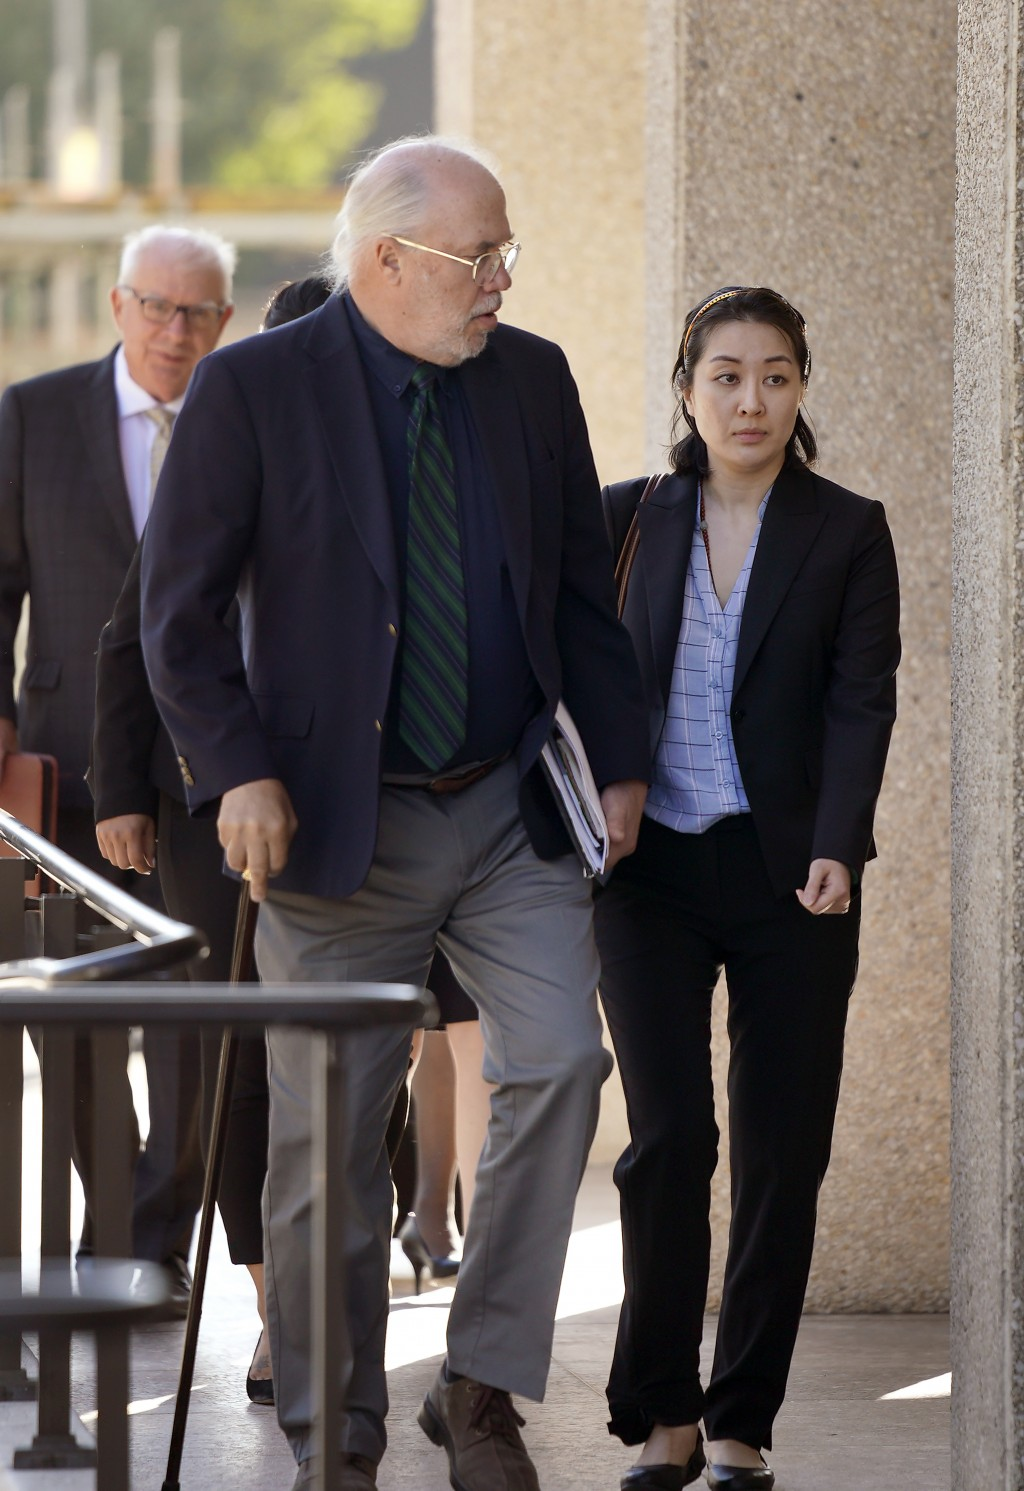 Tiffany Li, right, and her attorney Geoff Carr, left, arrive at the courthouse Thursday, Sept. 12, 2019, in Redwood City, Calif. The trial of Li, a Ch